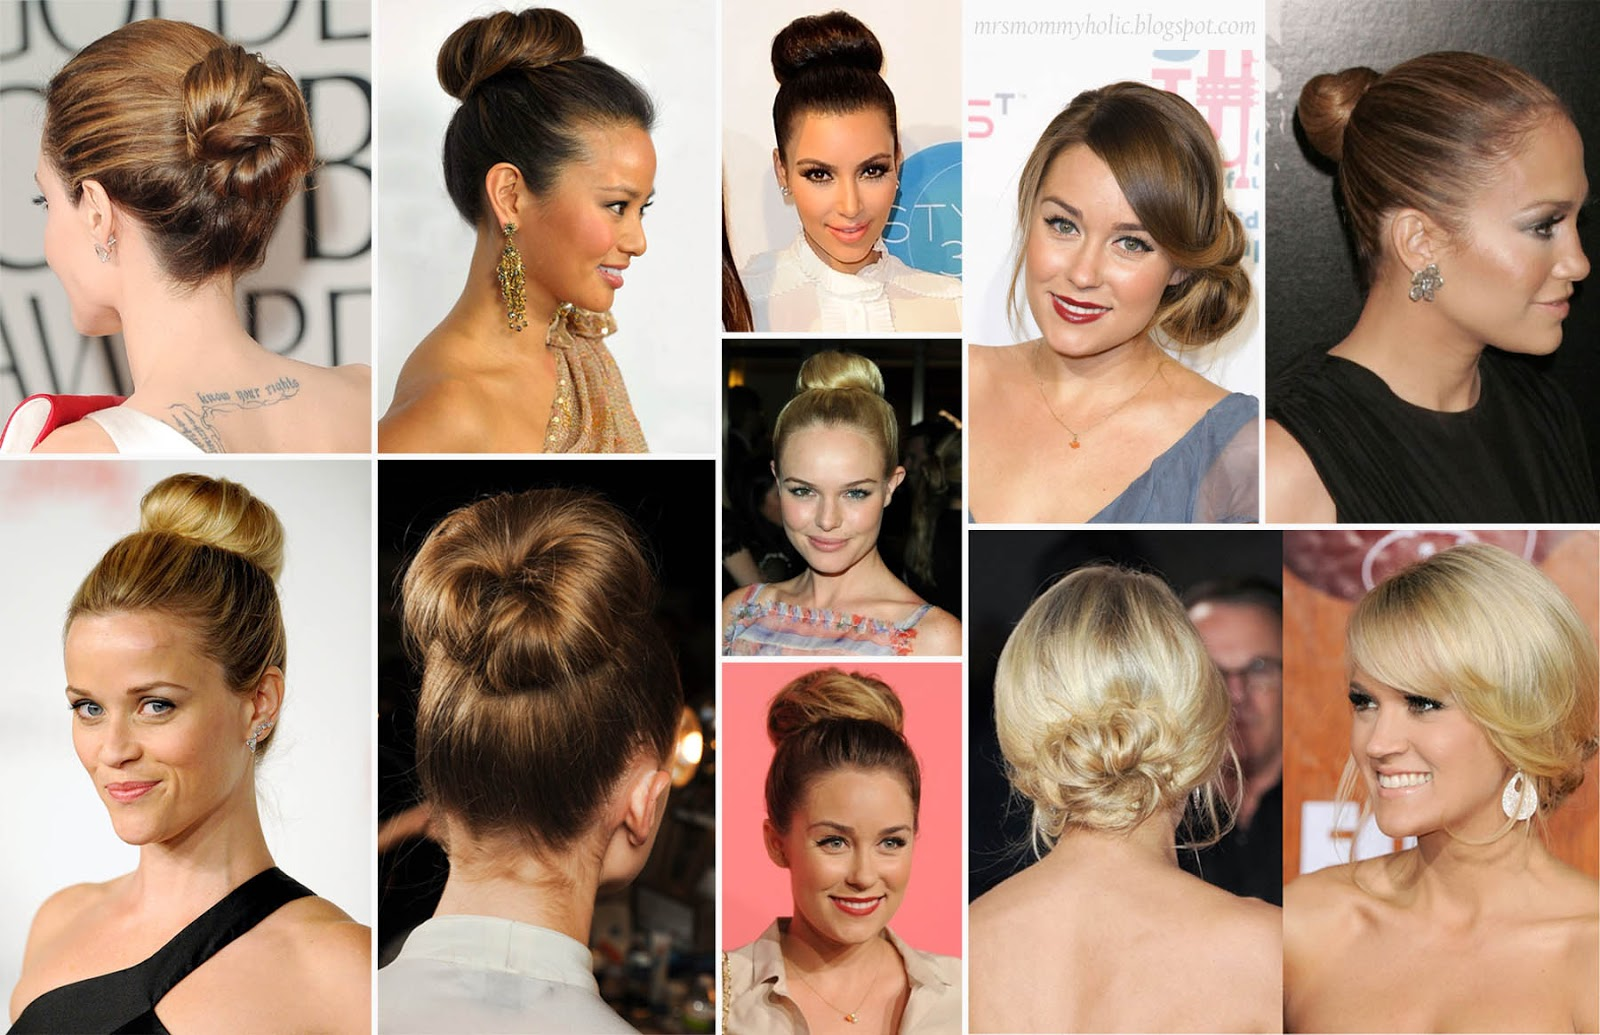 Surprising Mrsmommyholic Easiest Hairstyle Ever The Donut Bun Hairstyles For Women Draintrainus